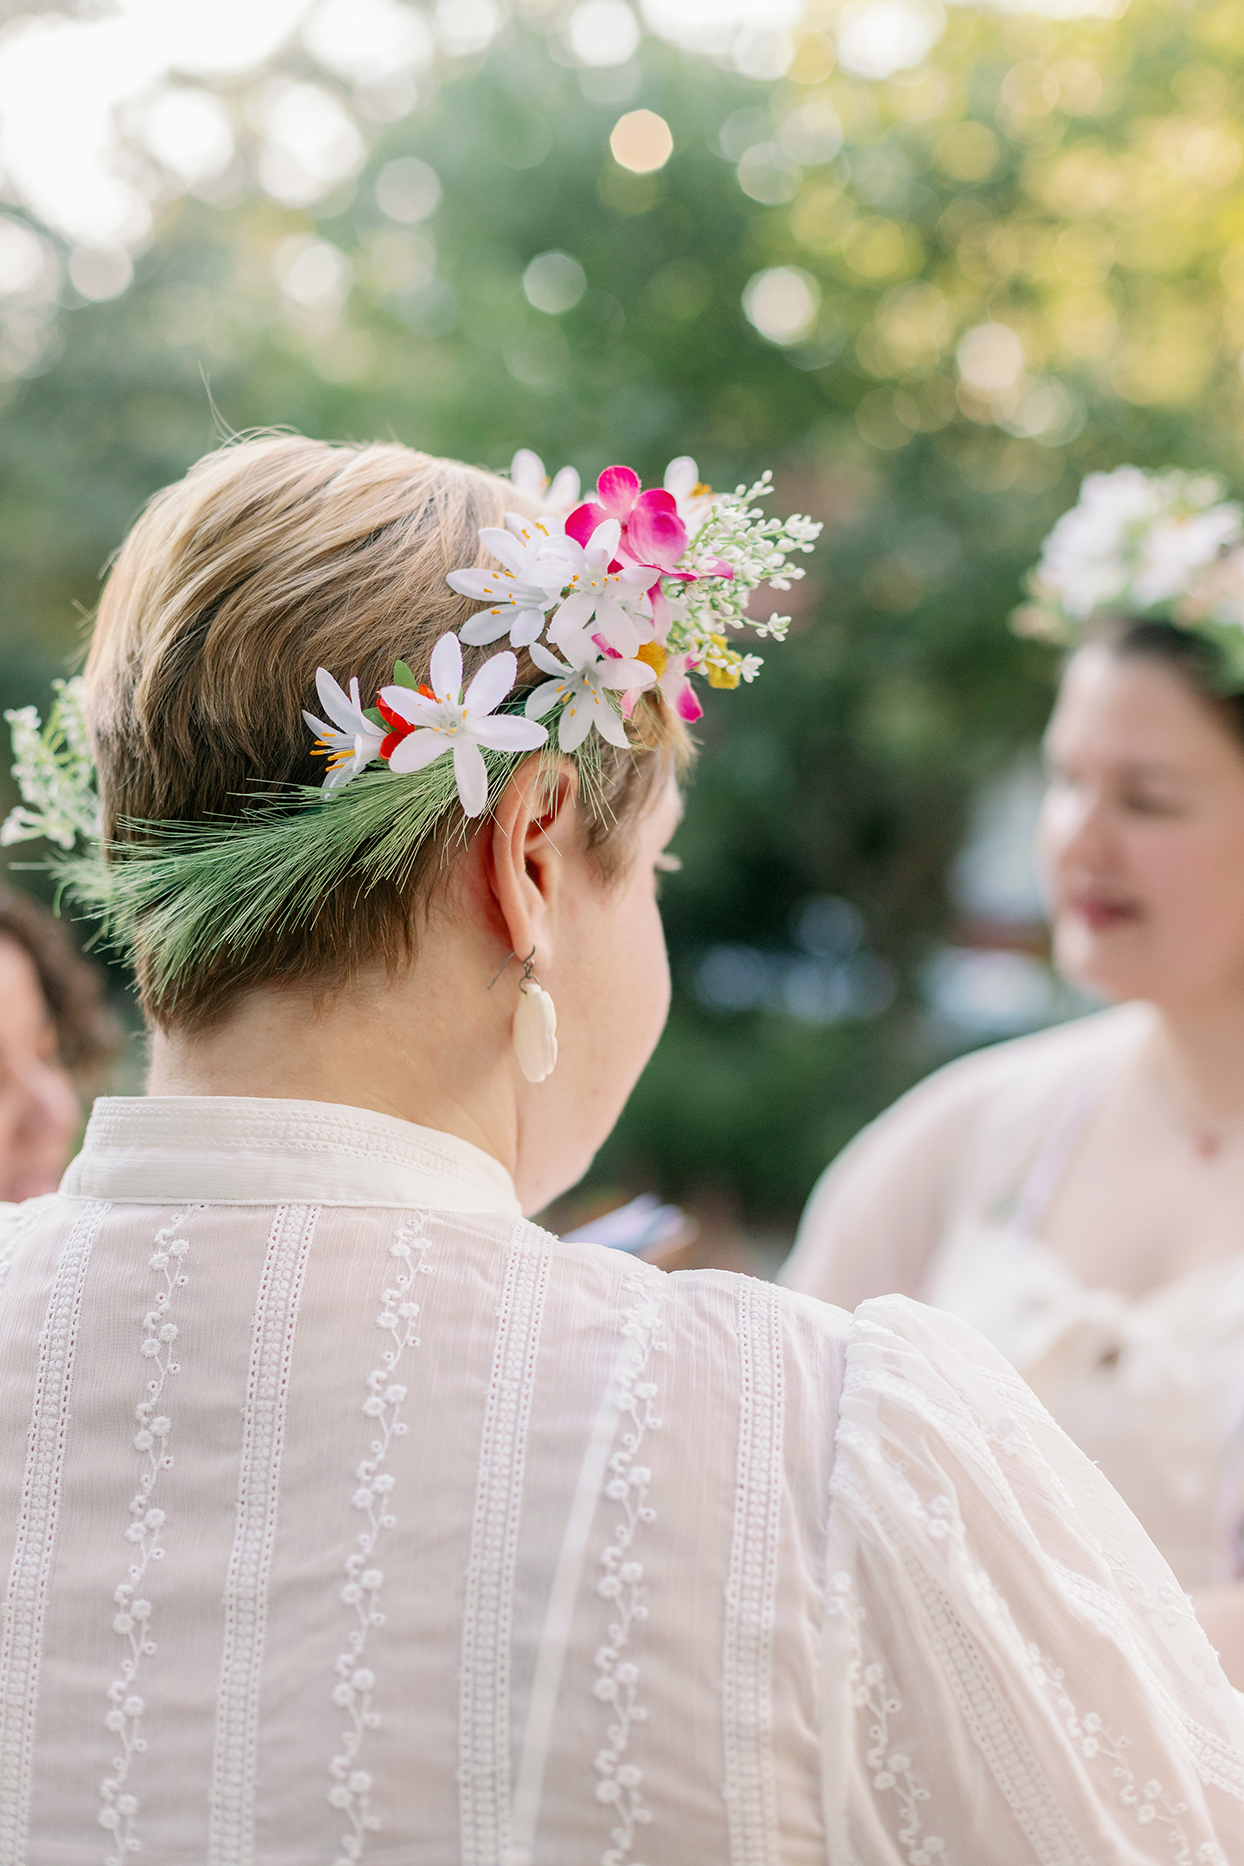 brides wearing flower crowns during ceremony